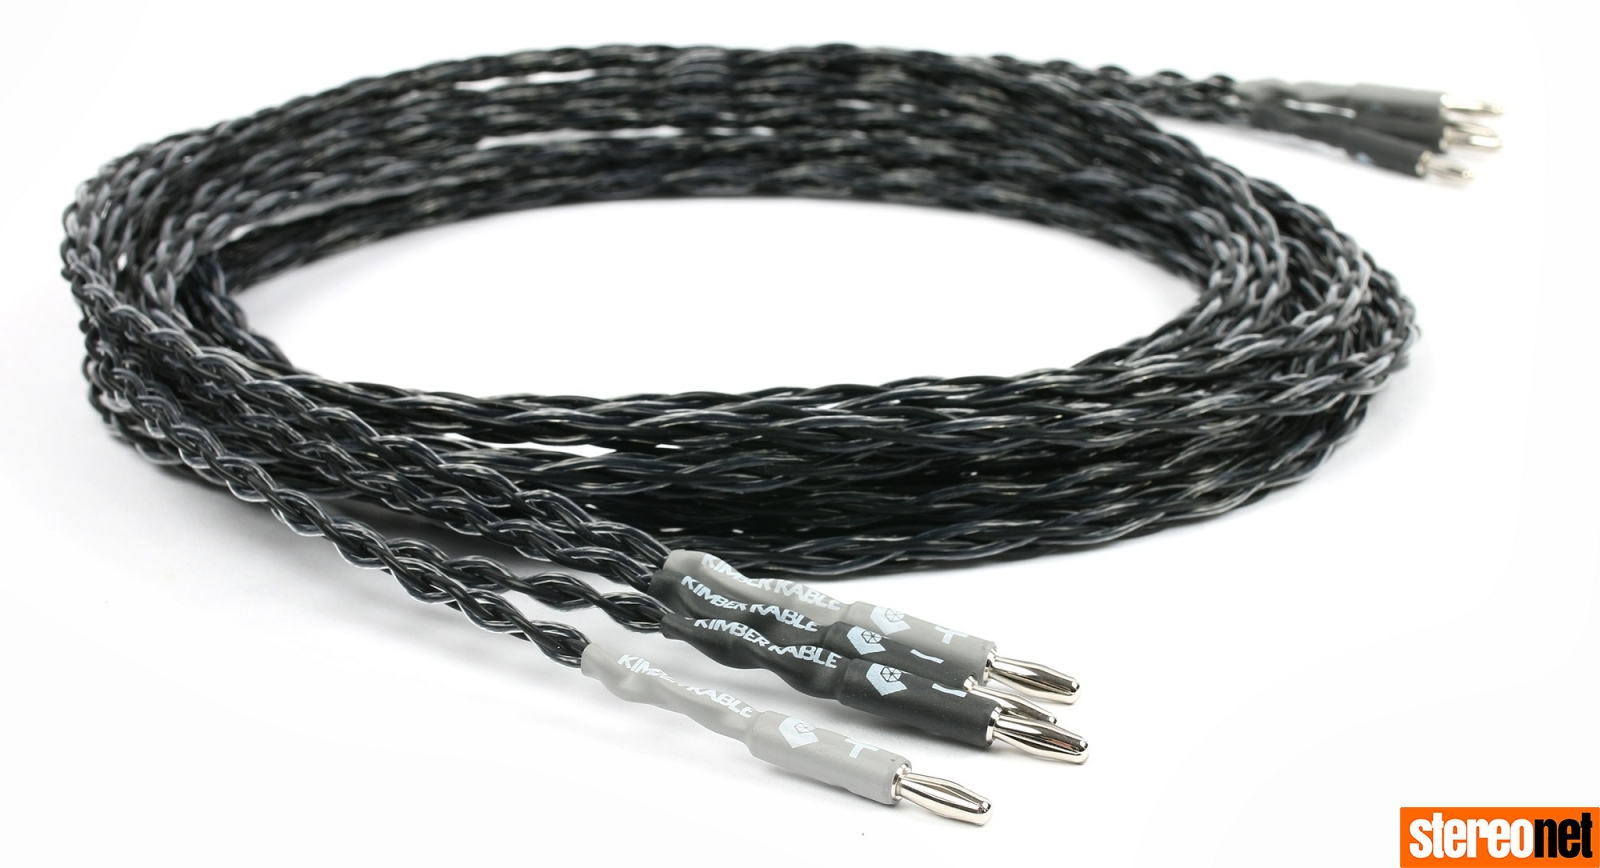 Kimber Kable Carbon Speaker Cable